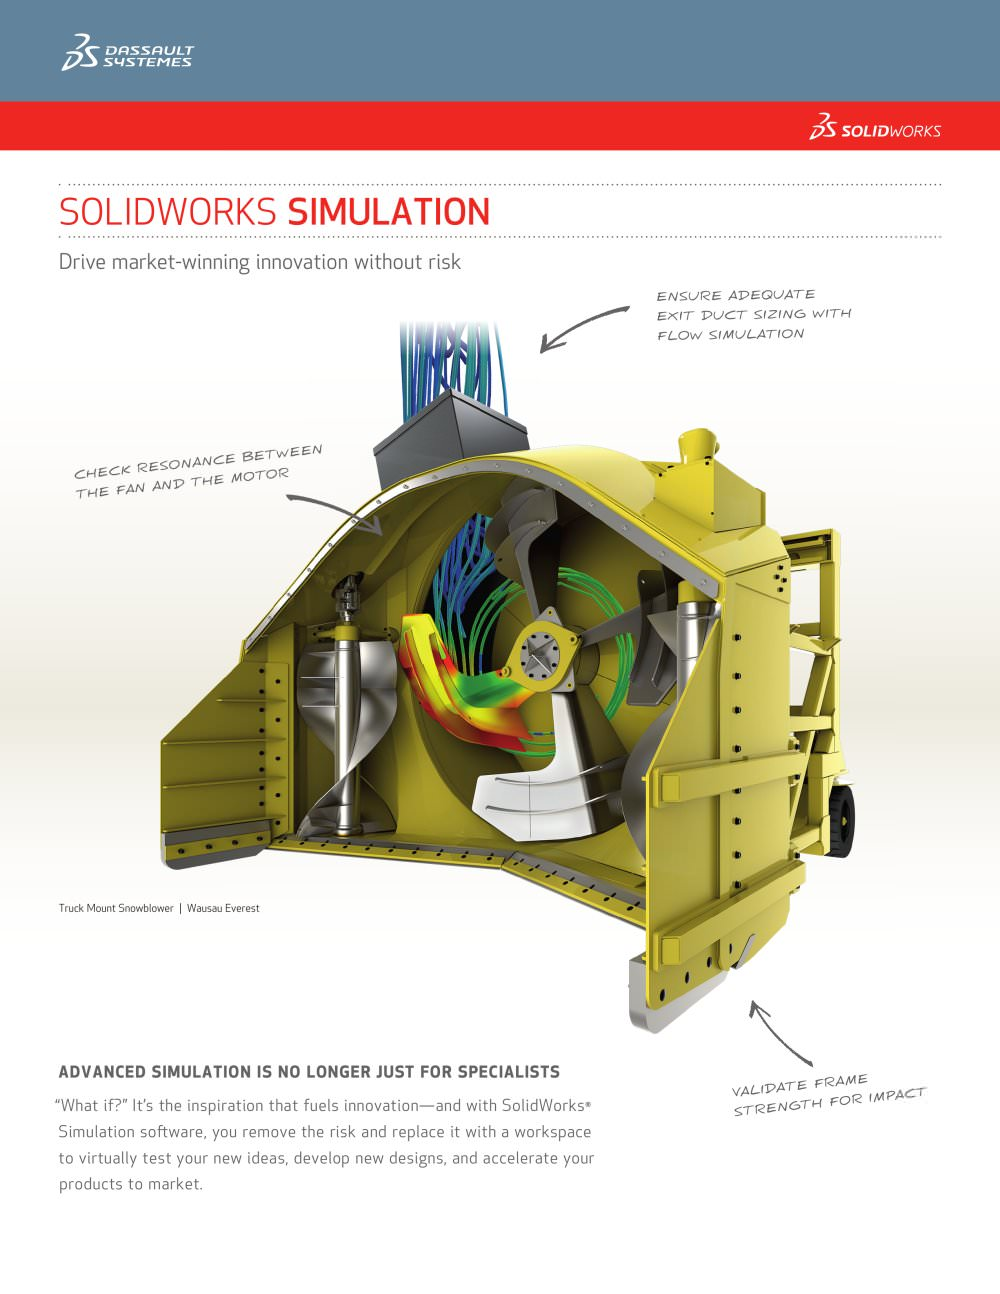 Solidworks simulation 2012 dassault systmes solidworks corp solidworks simulation 2012 1 6 pages baditri Images